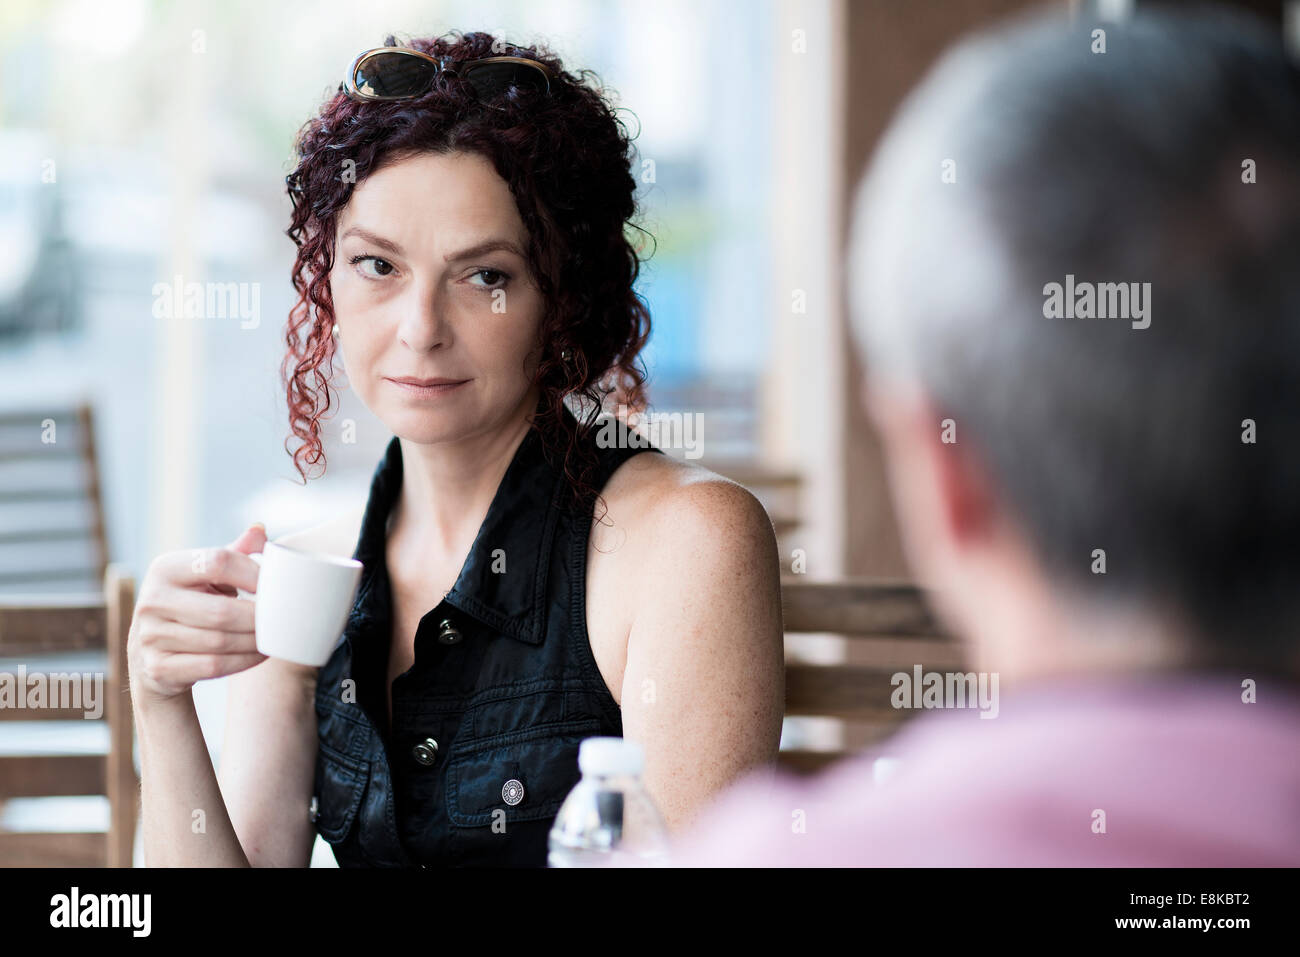 Couple in a coffee shop - Stock Image